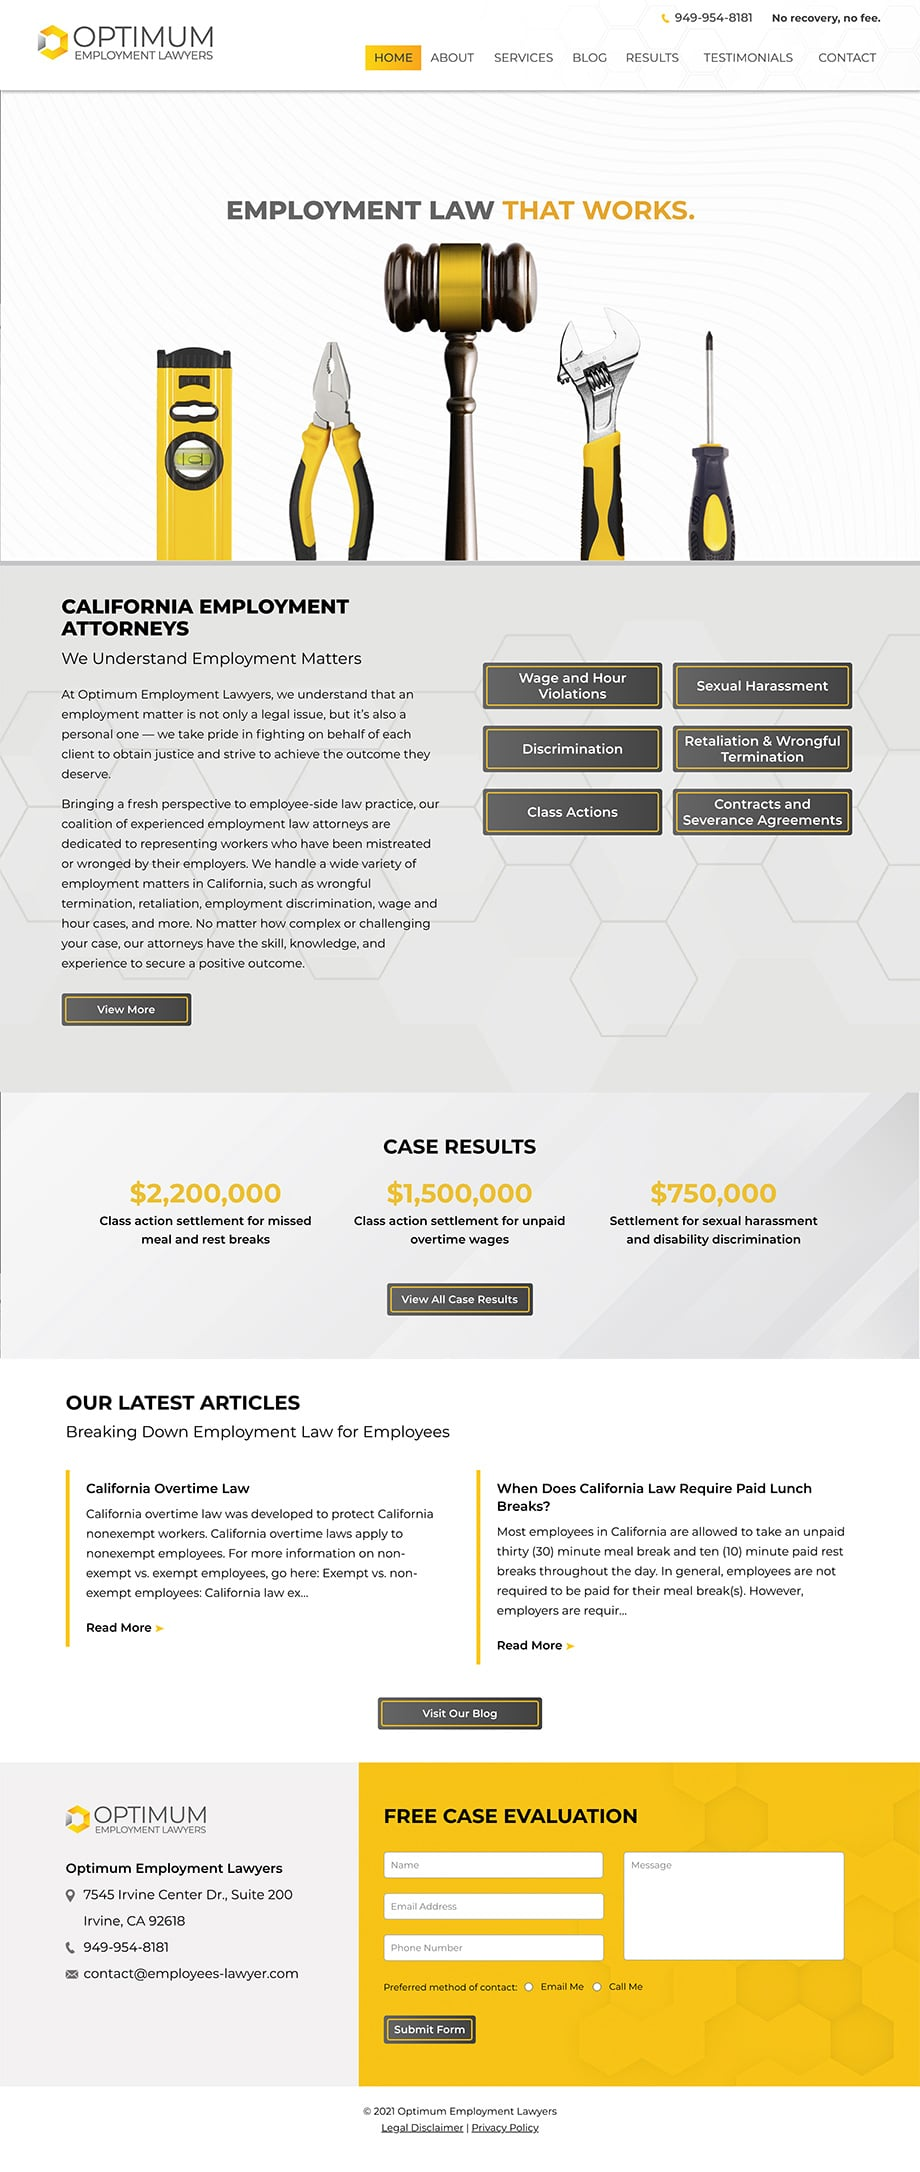 Law Firm Website Design for Optimum Employment Lawyers